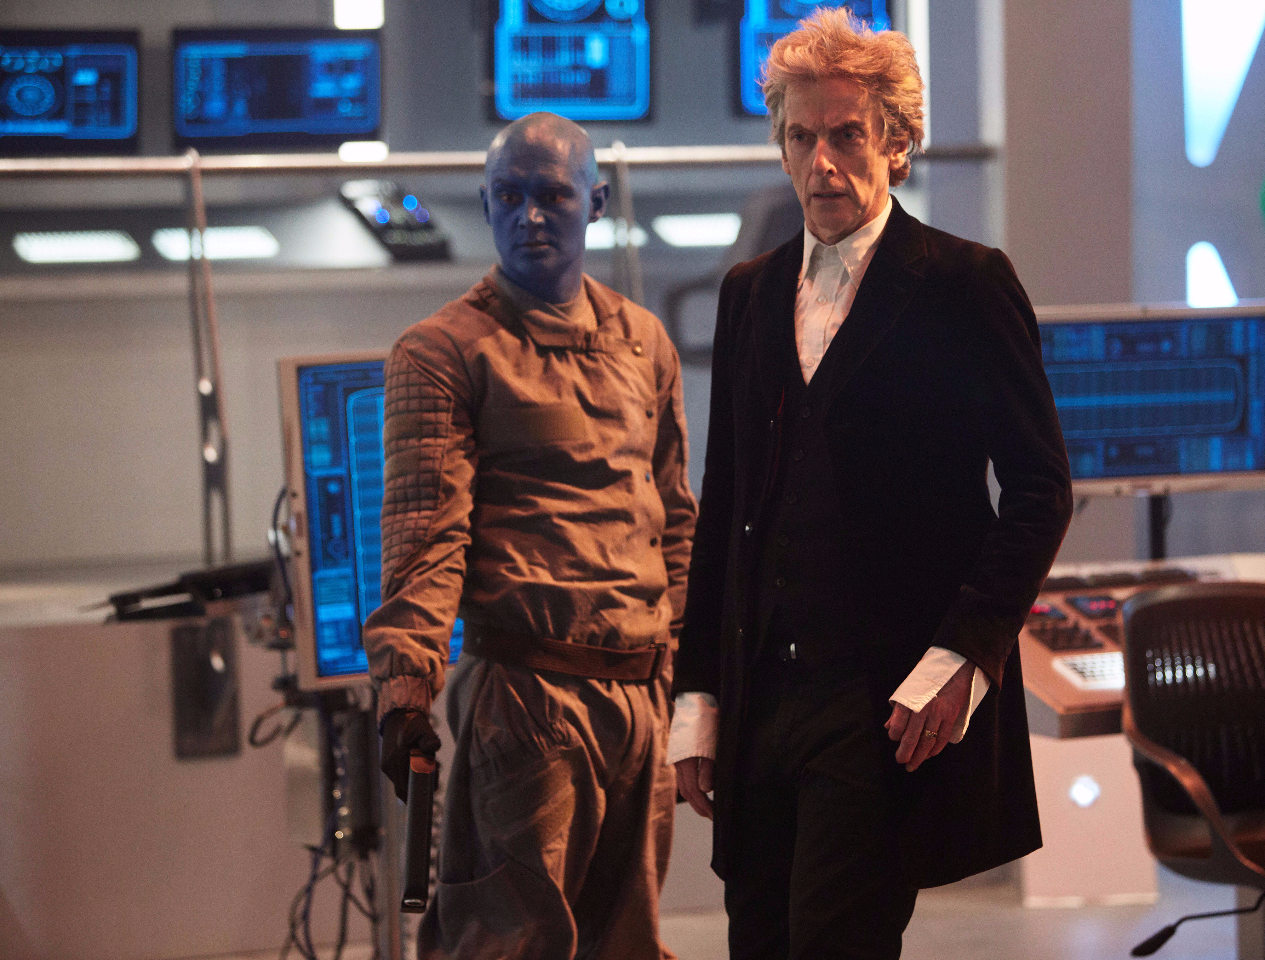 'Jorj' and The Doctor, in scene